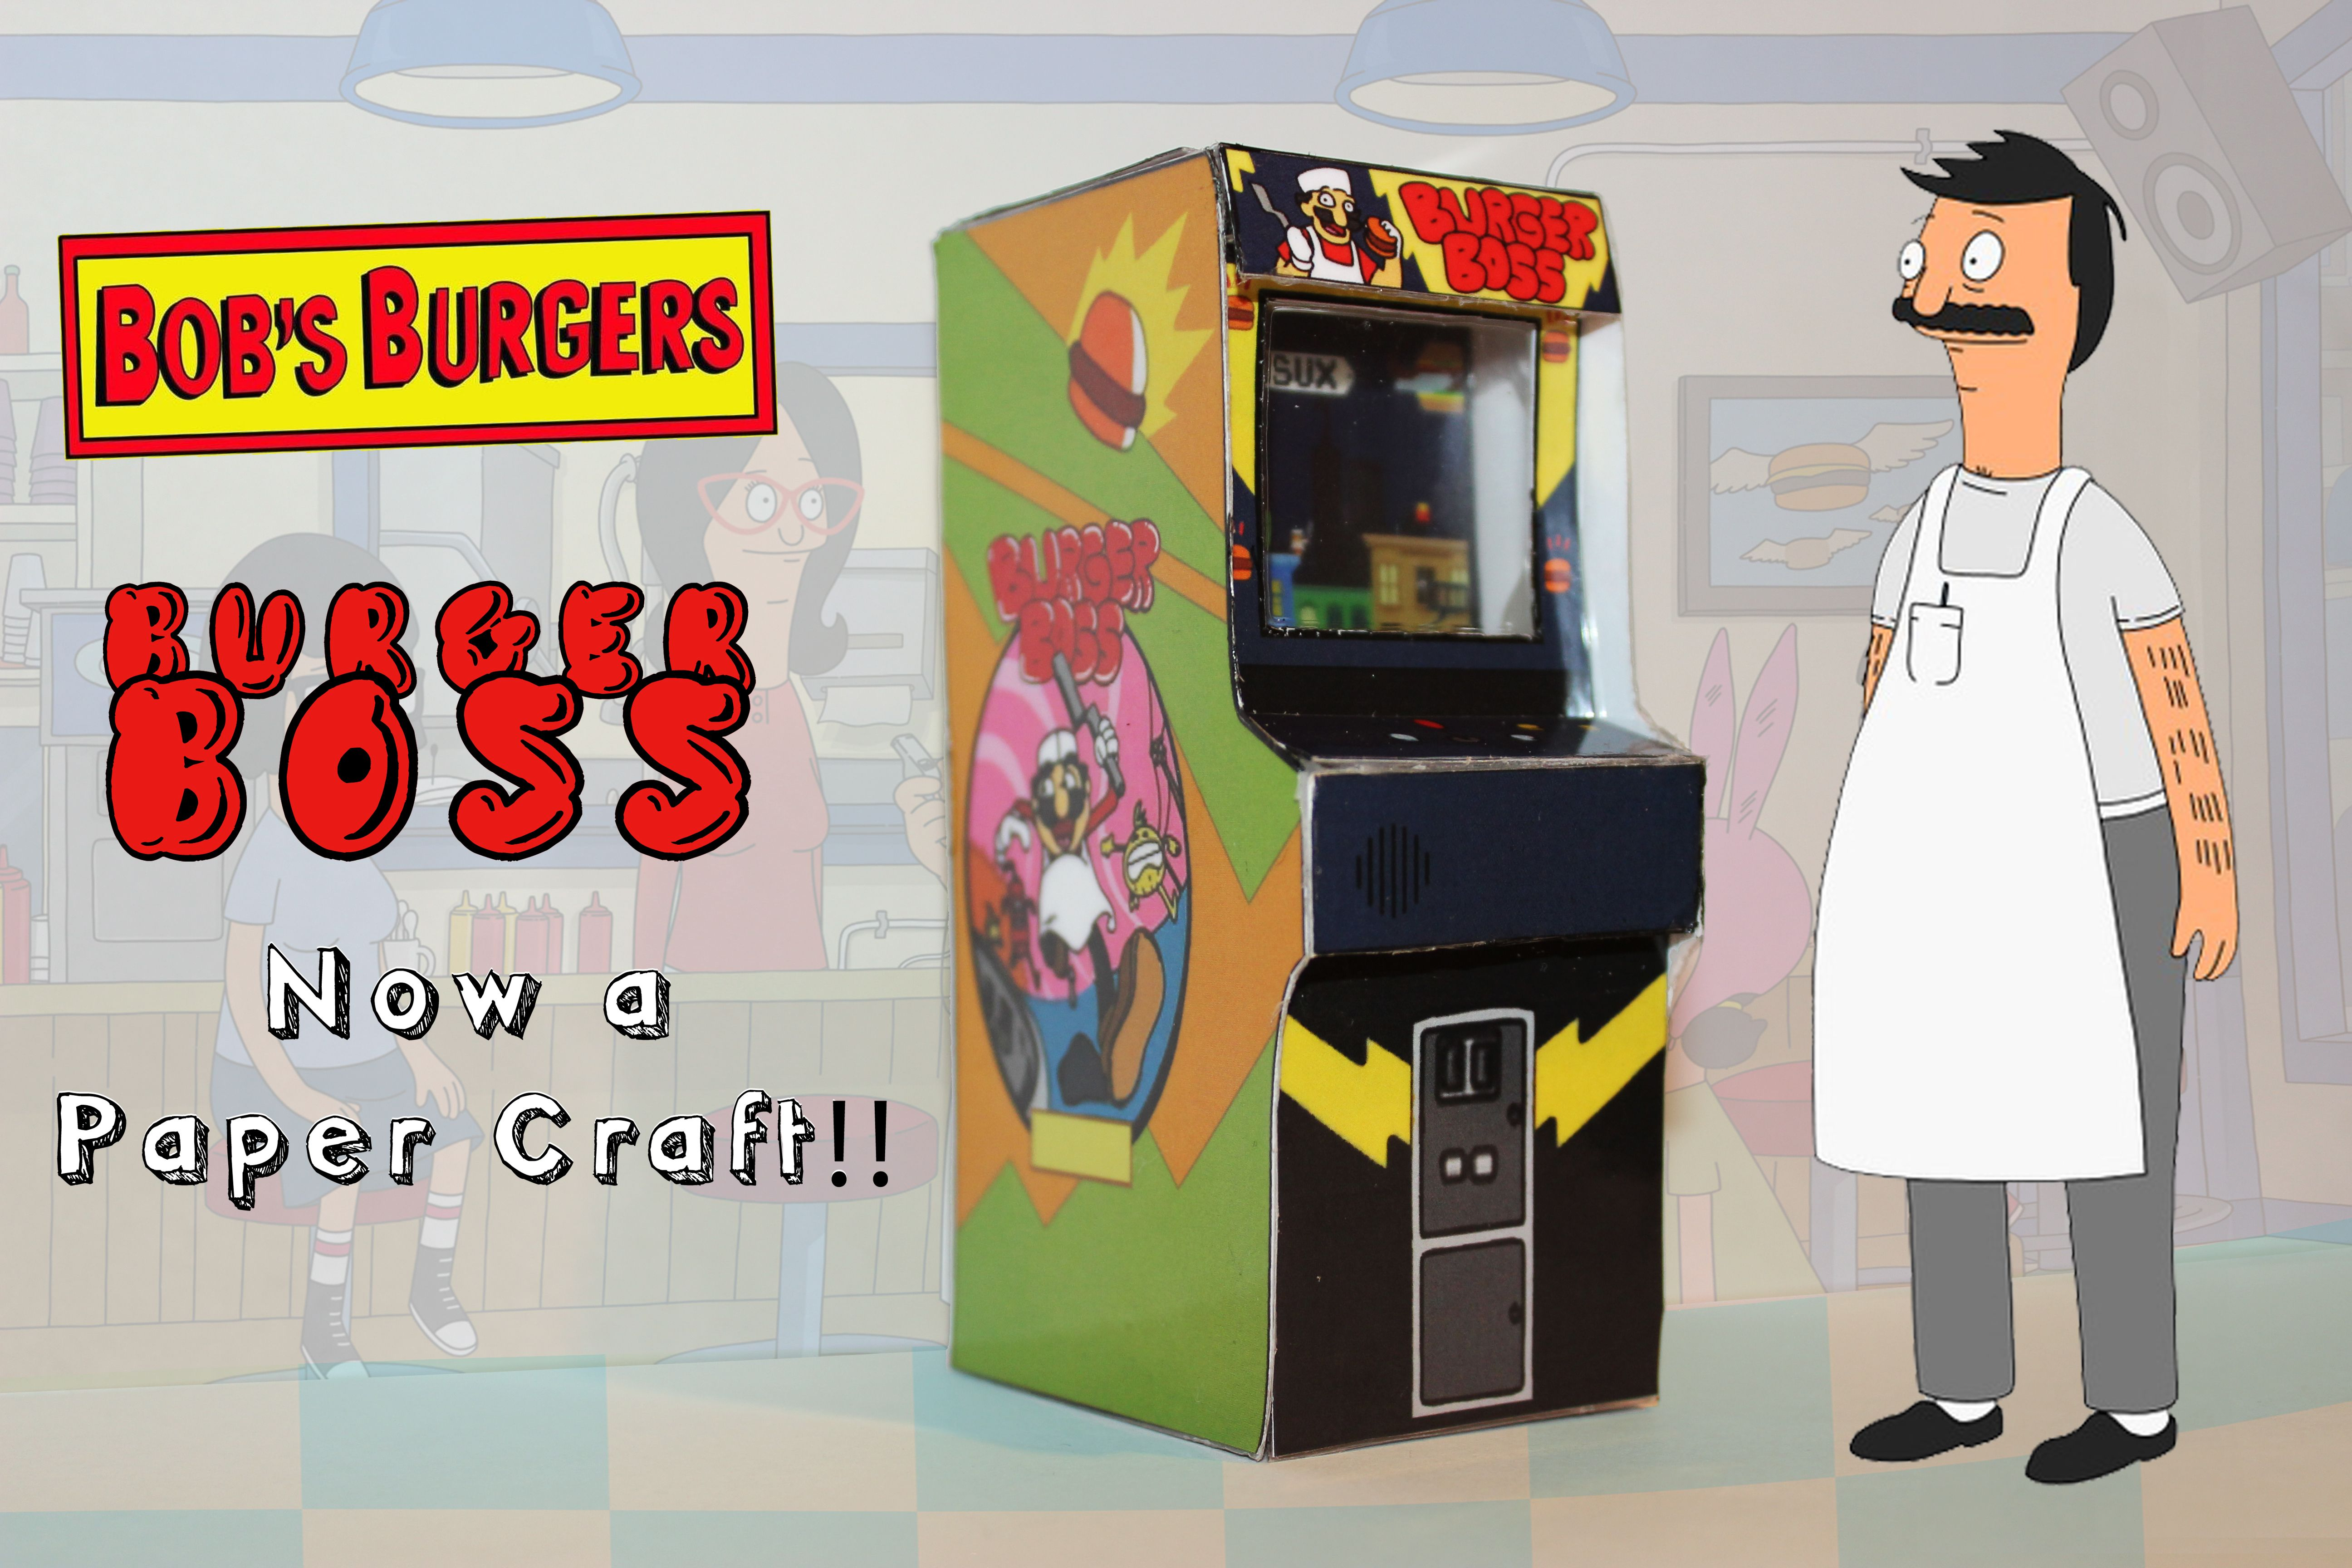 New Burger Boss Arcade Papercraft This Machine Can Be Seen On Bob S Burgers Season 2 Episode 4 Bobs Burgers Paper Crafts Bobs Burgers Seasons